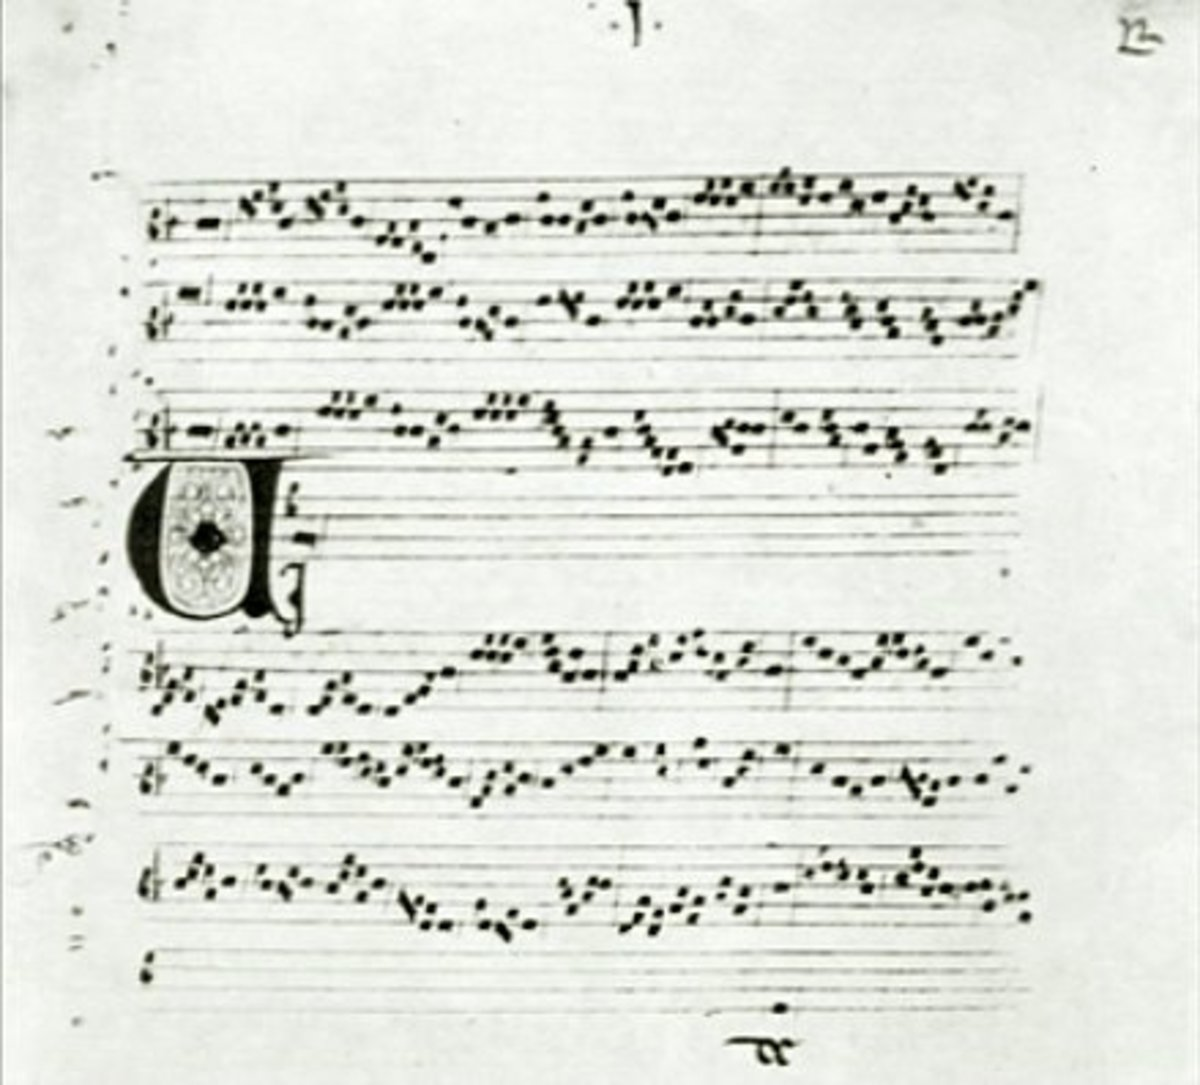 This a copy of the music to Perotin's version of Viderunt Omnes